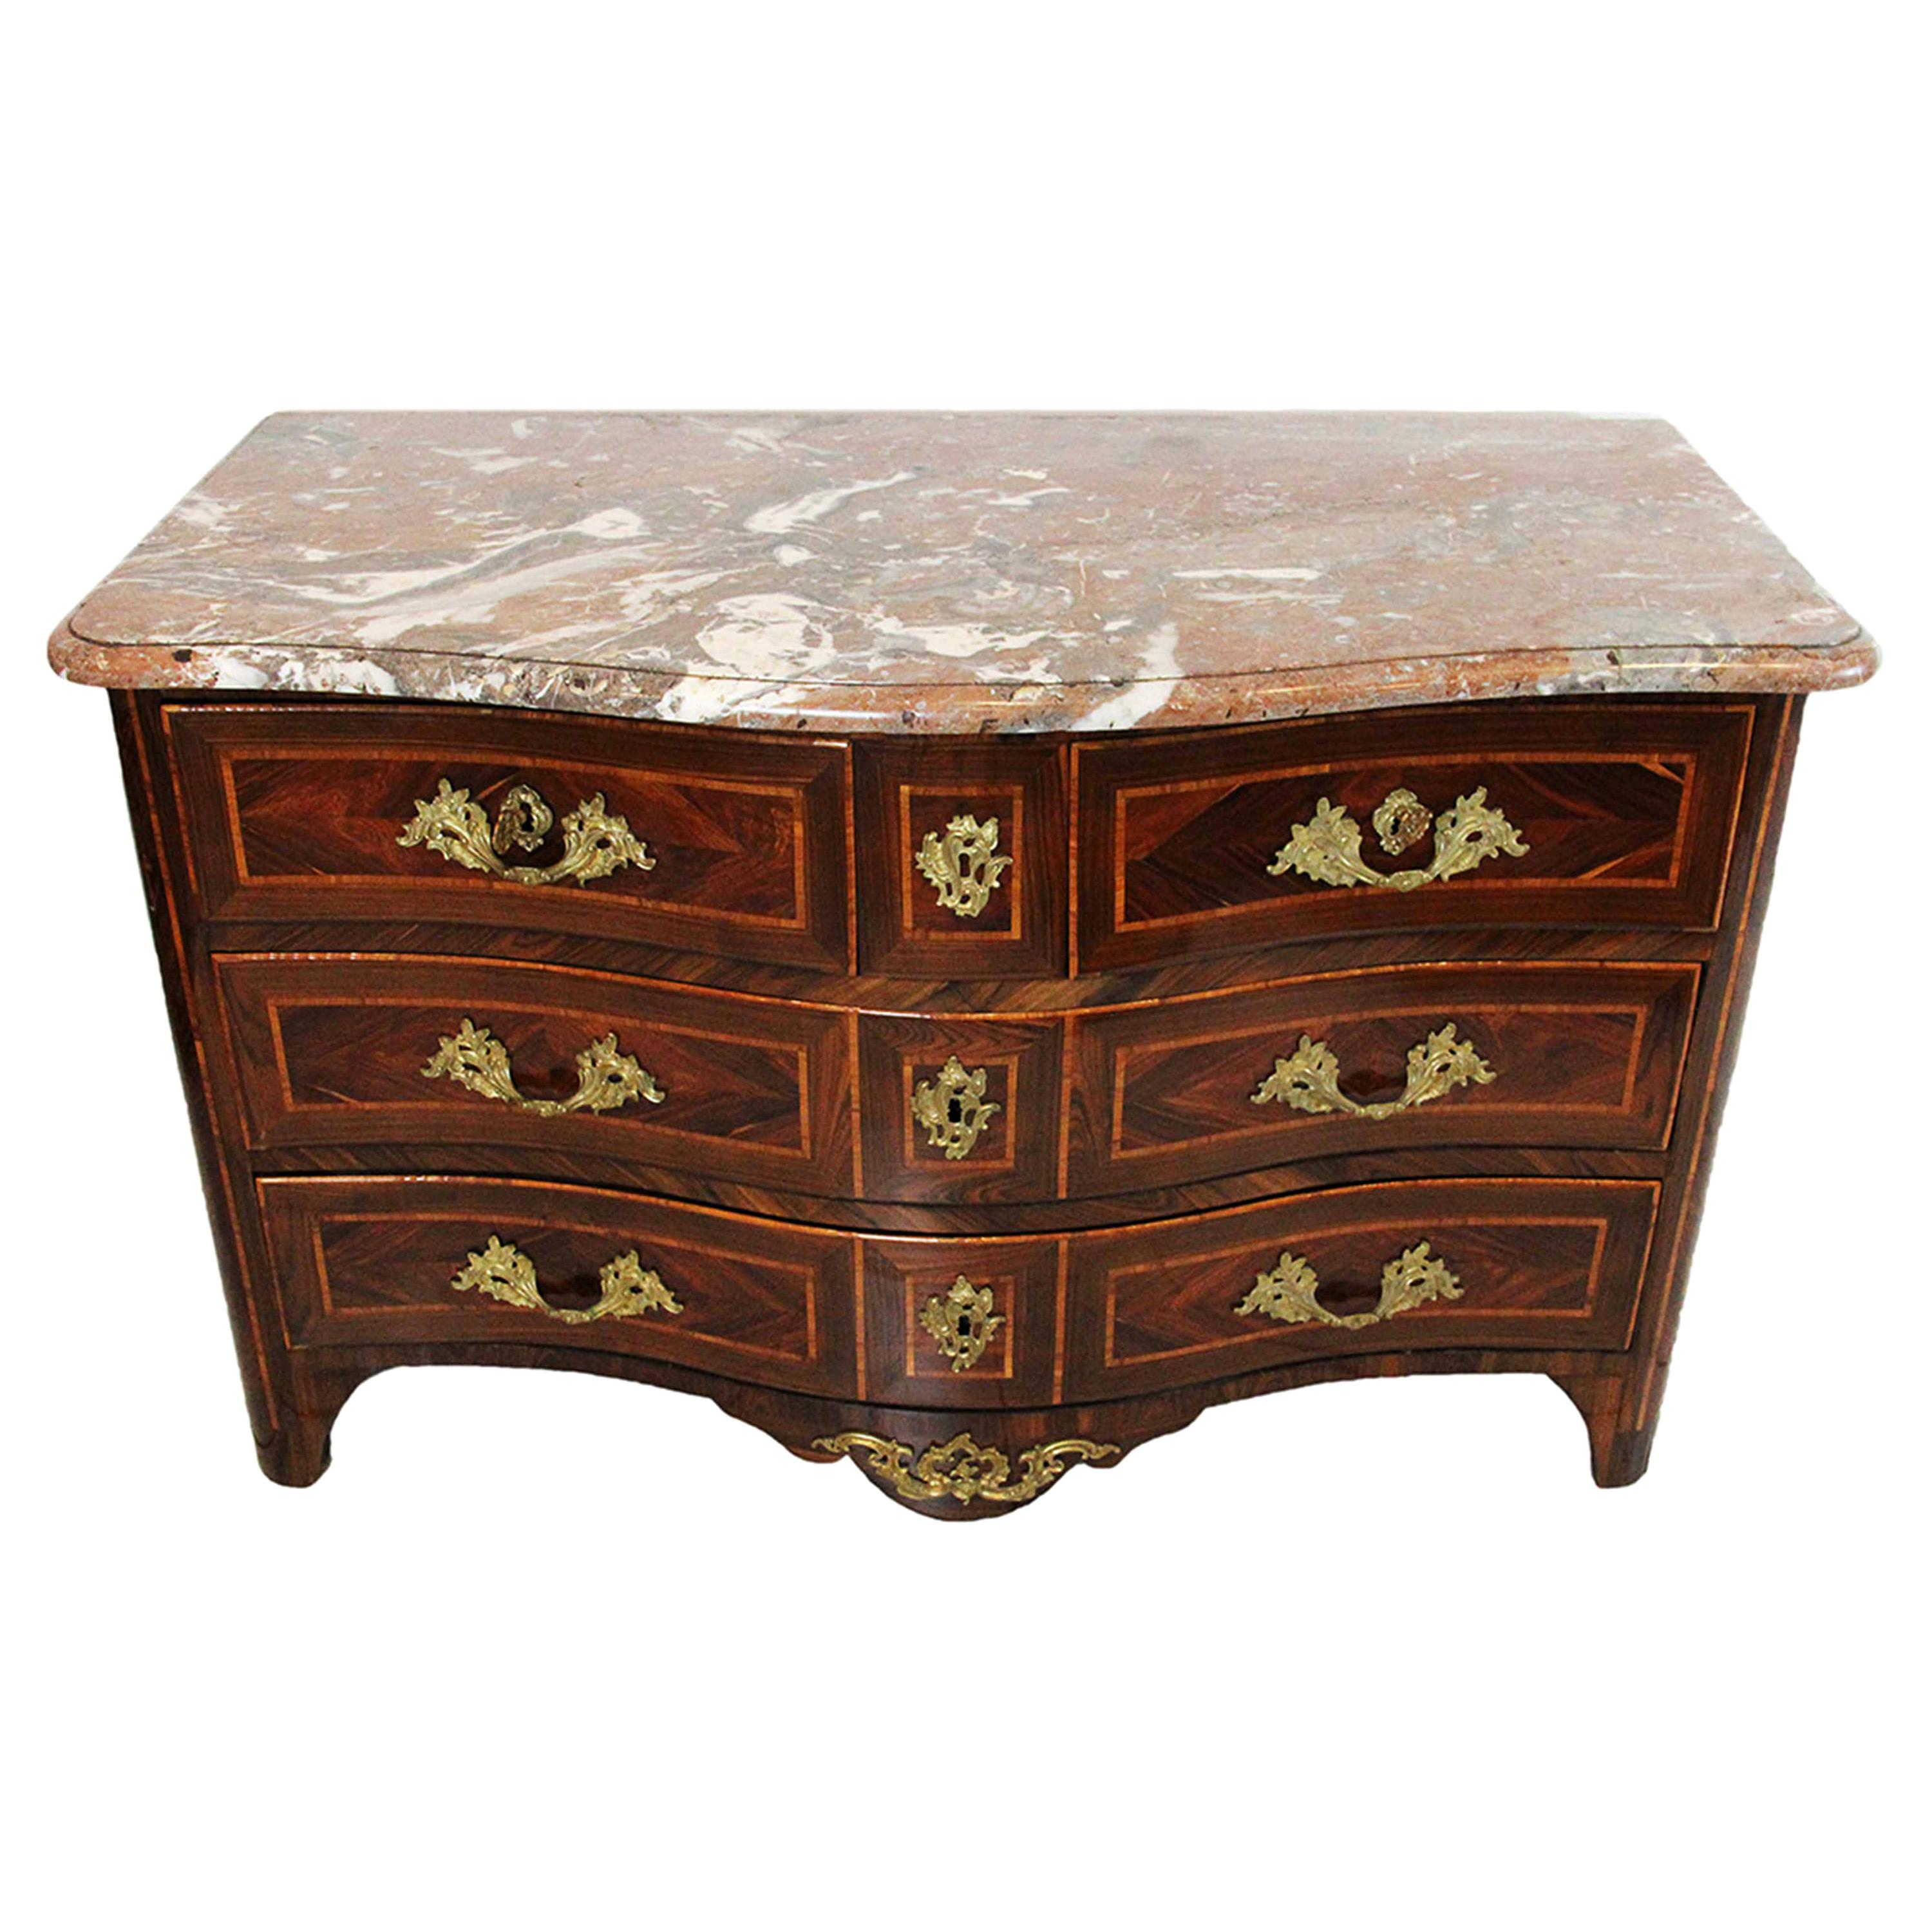 18th Century Commode Stamped Jean Charles Ellaume with Veined Marble Top